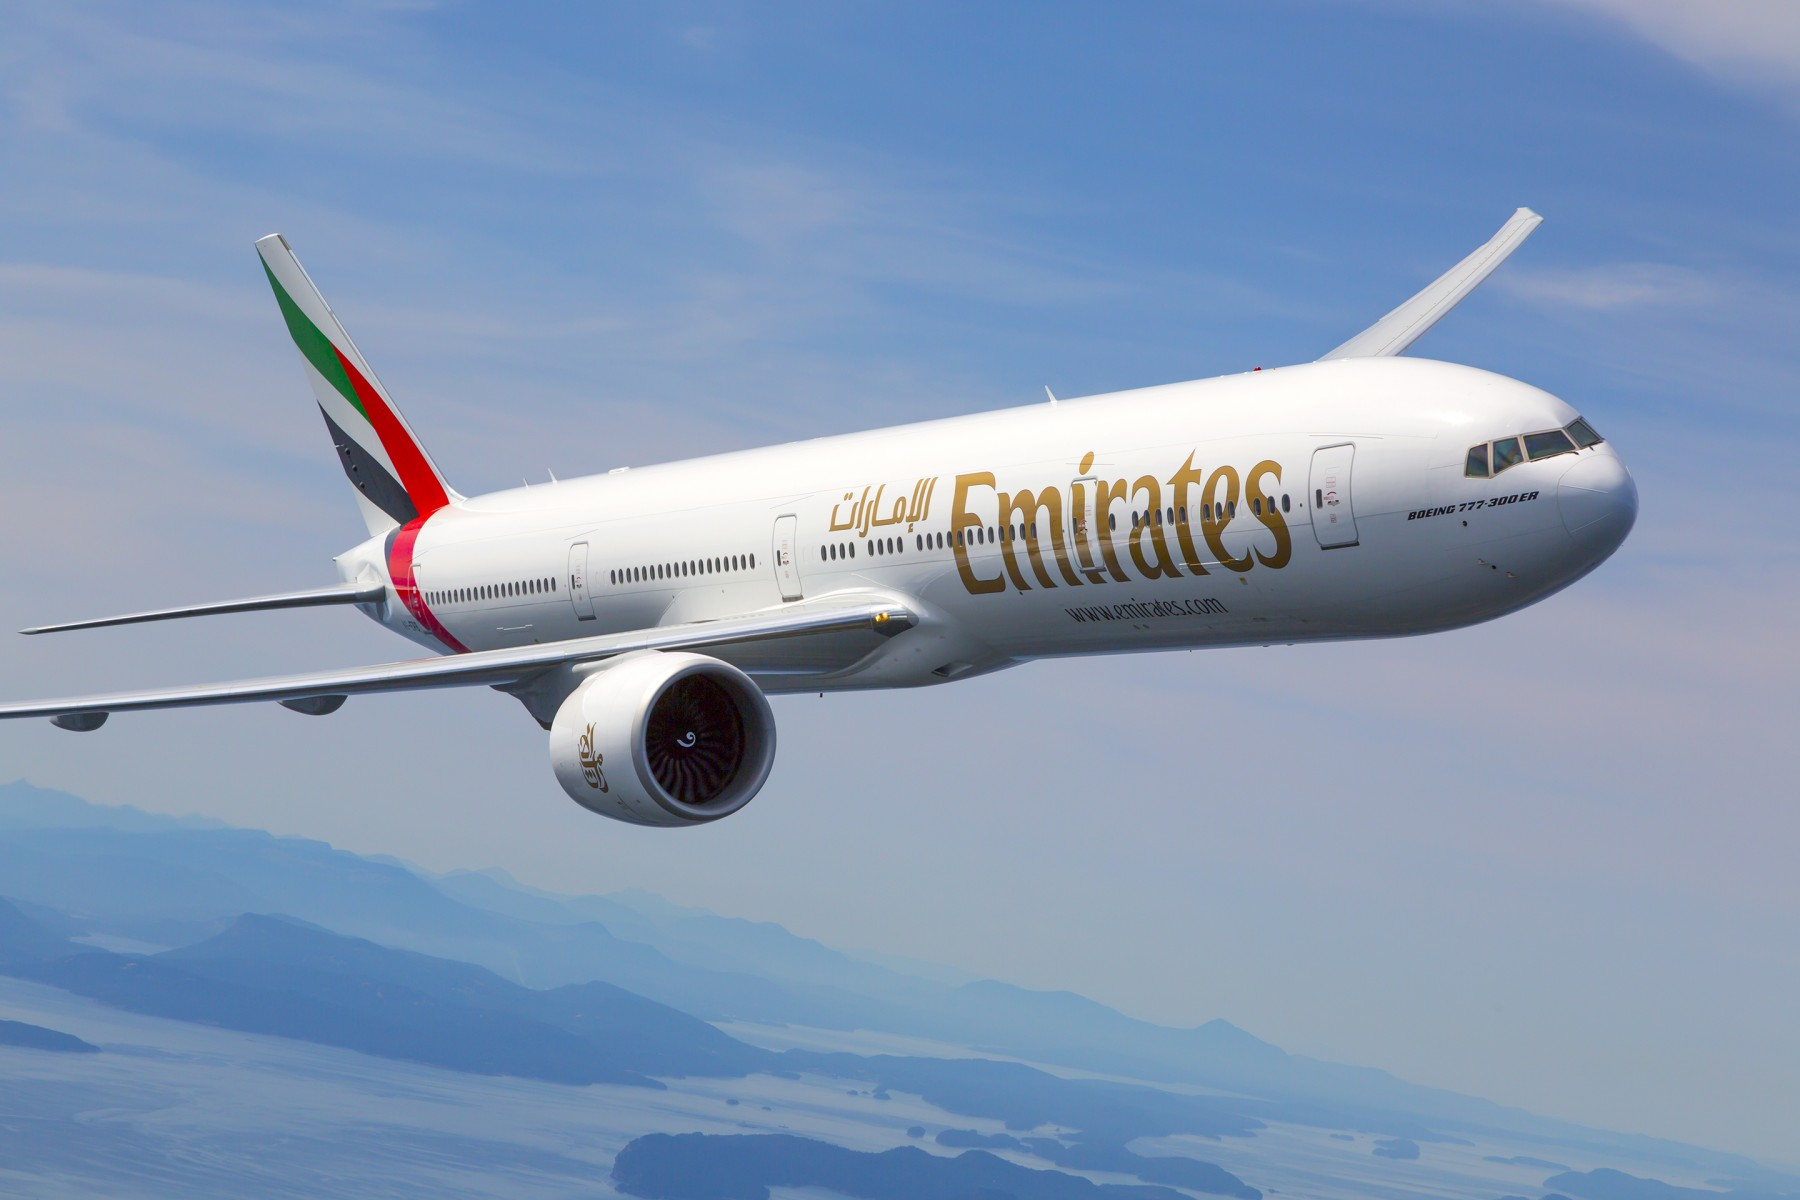 Emirates will pay for a hotel stay if you have a long layover